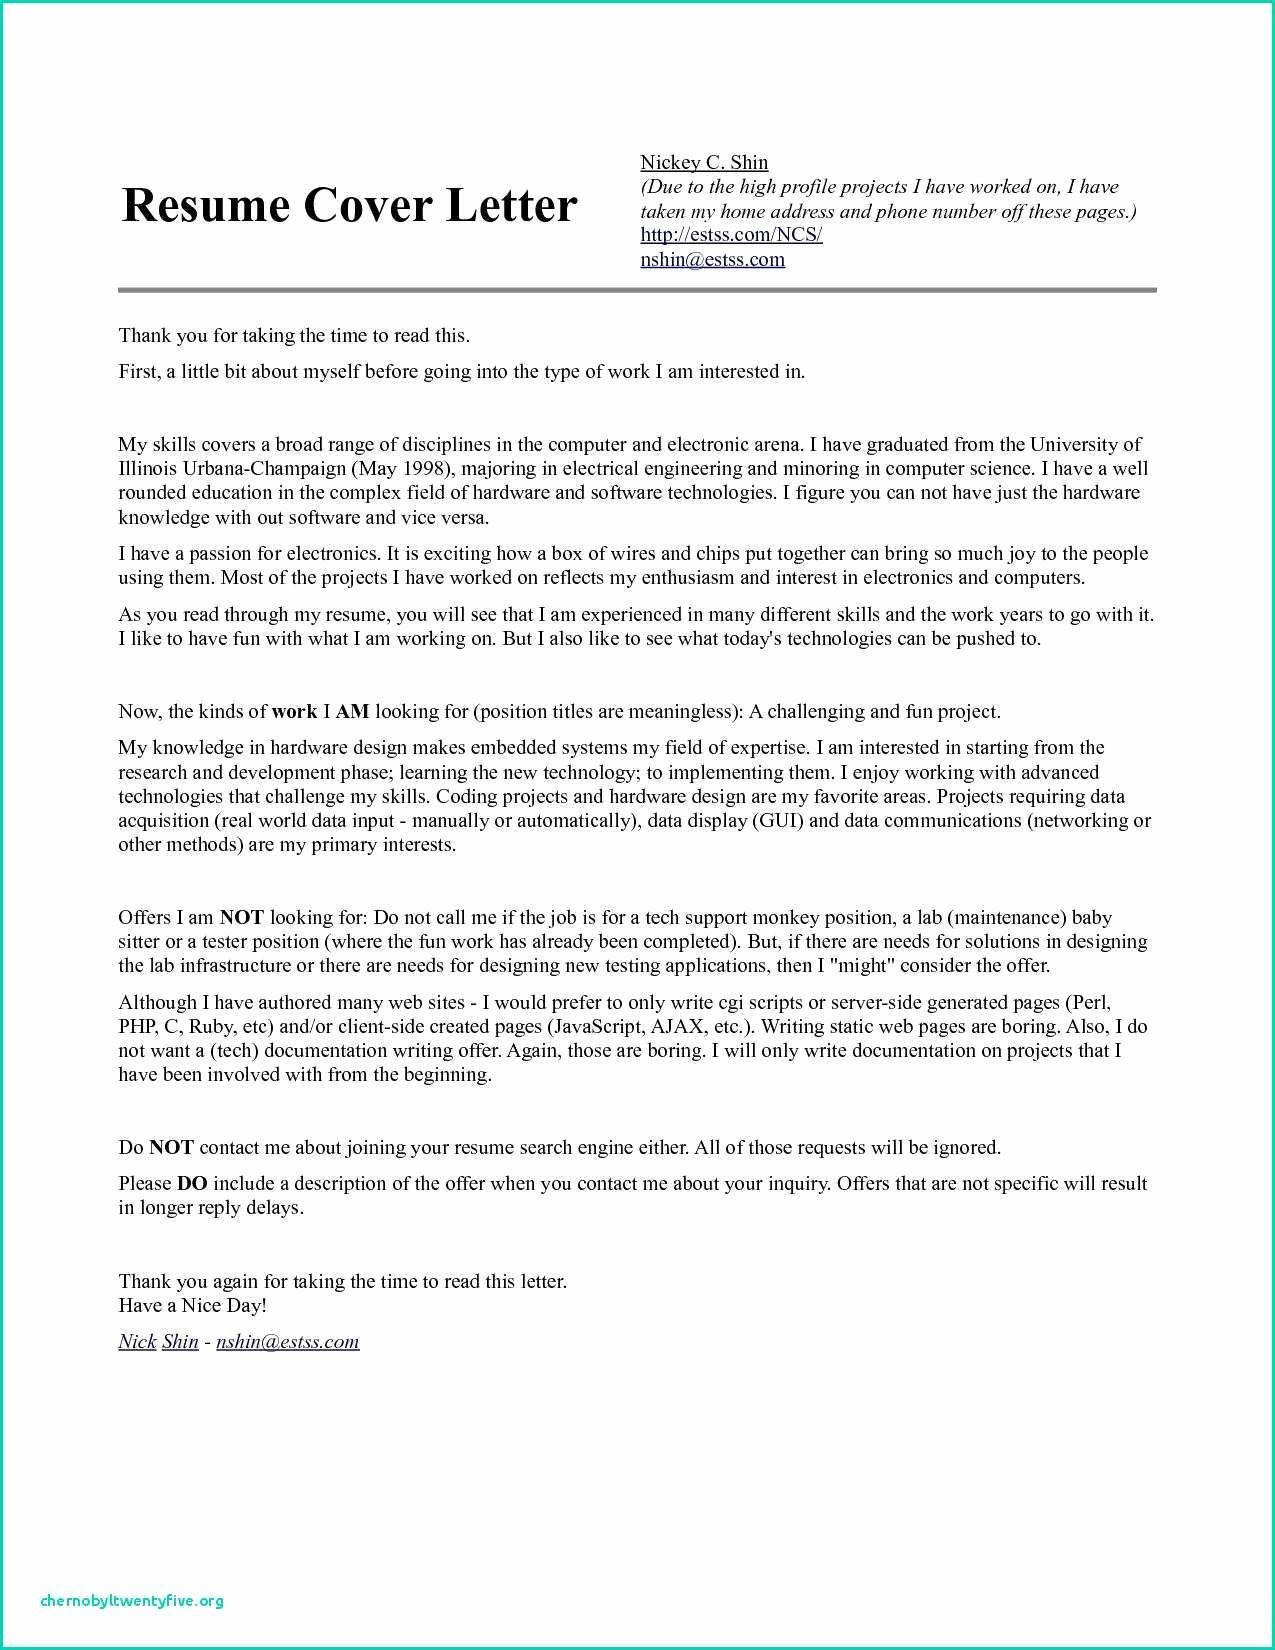 Letter Of Explanation for Credit Inquiries Template Lovely Letter Inquiry Fresh Letter Response to Inquiry Letter